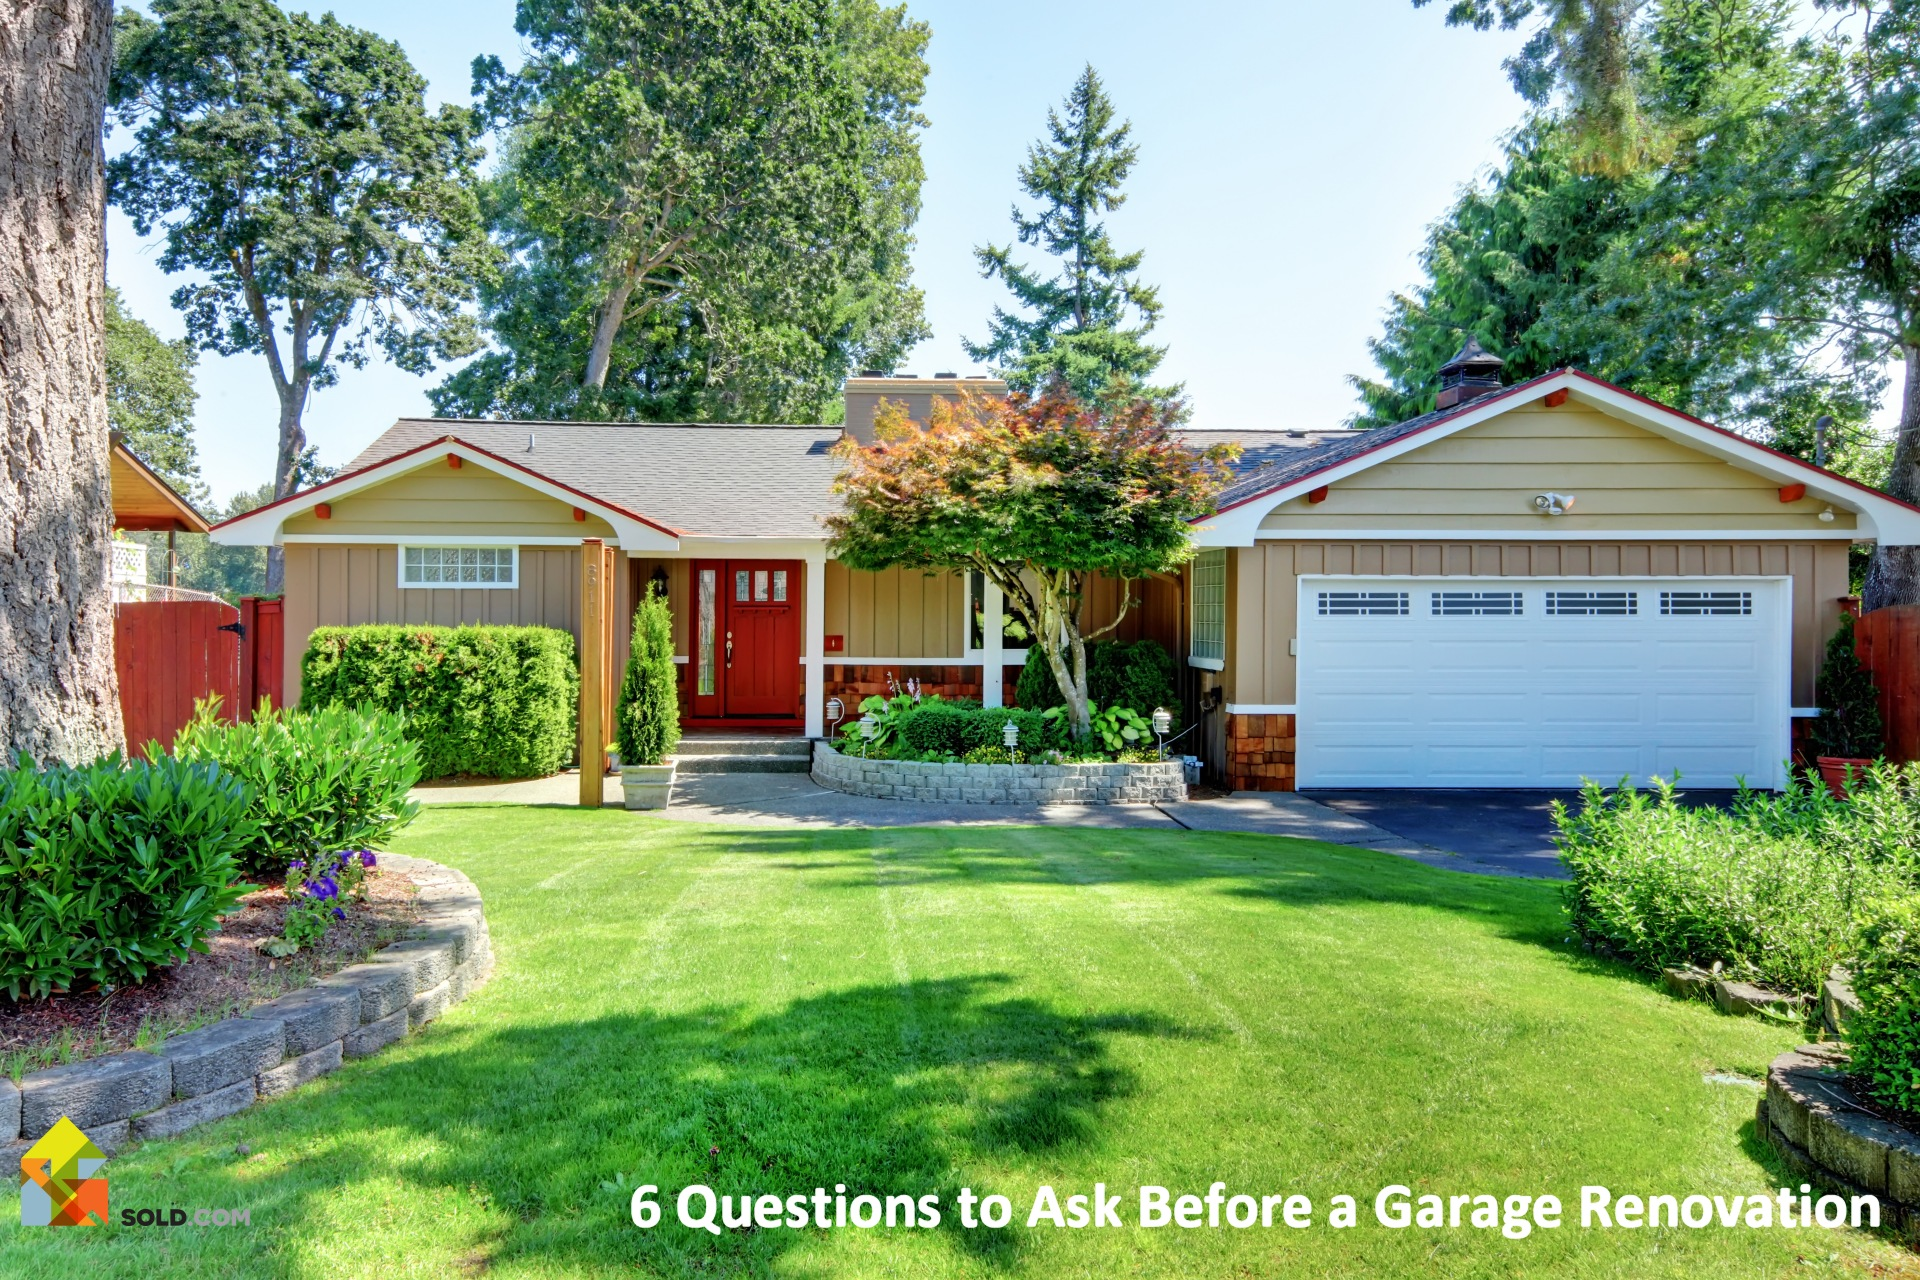 6 Questions to Ask Before a Garage Renovation